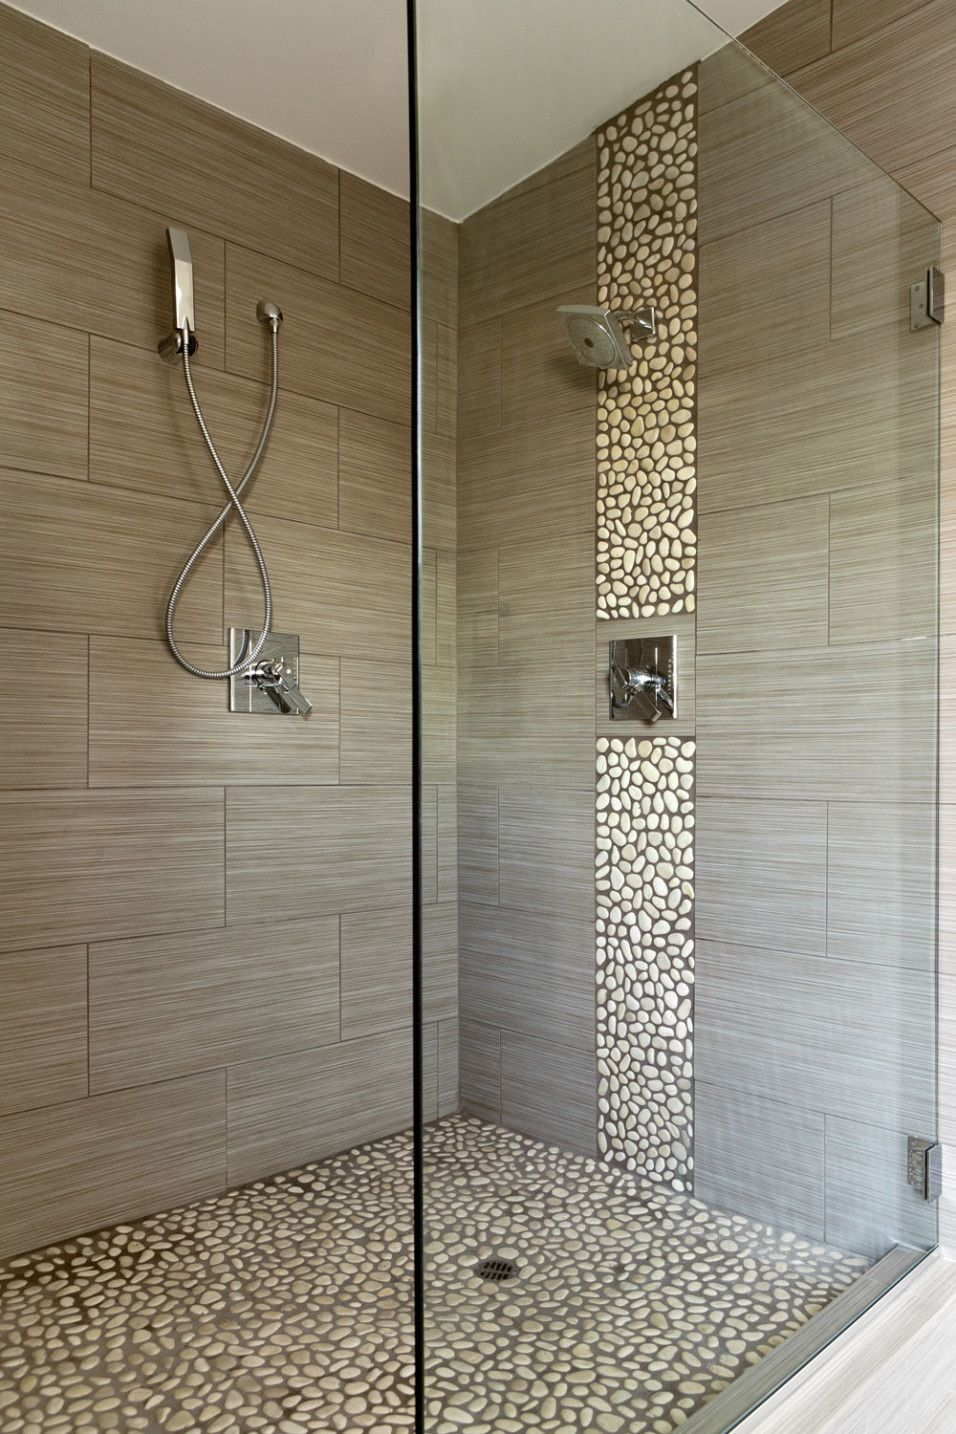 Douche A L Italienne Galet Tile Pinterest Tile Ideas Bathroom